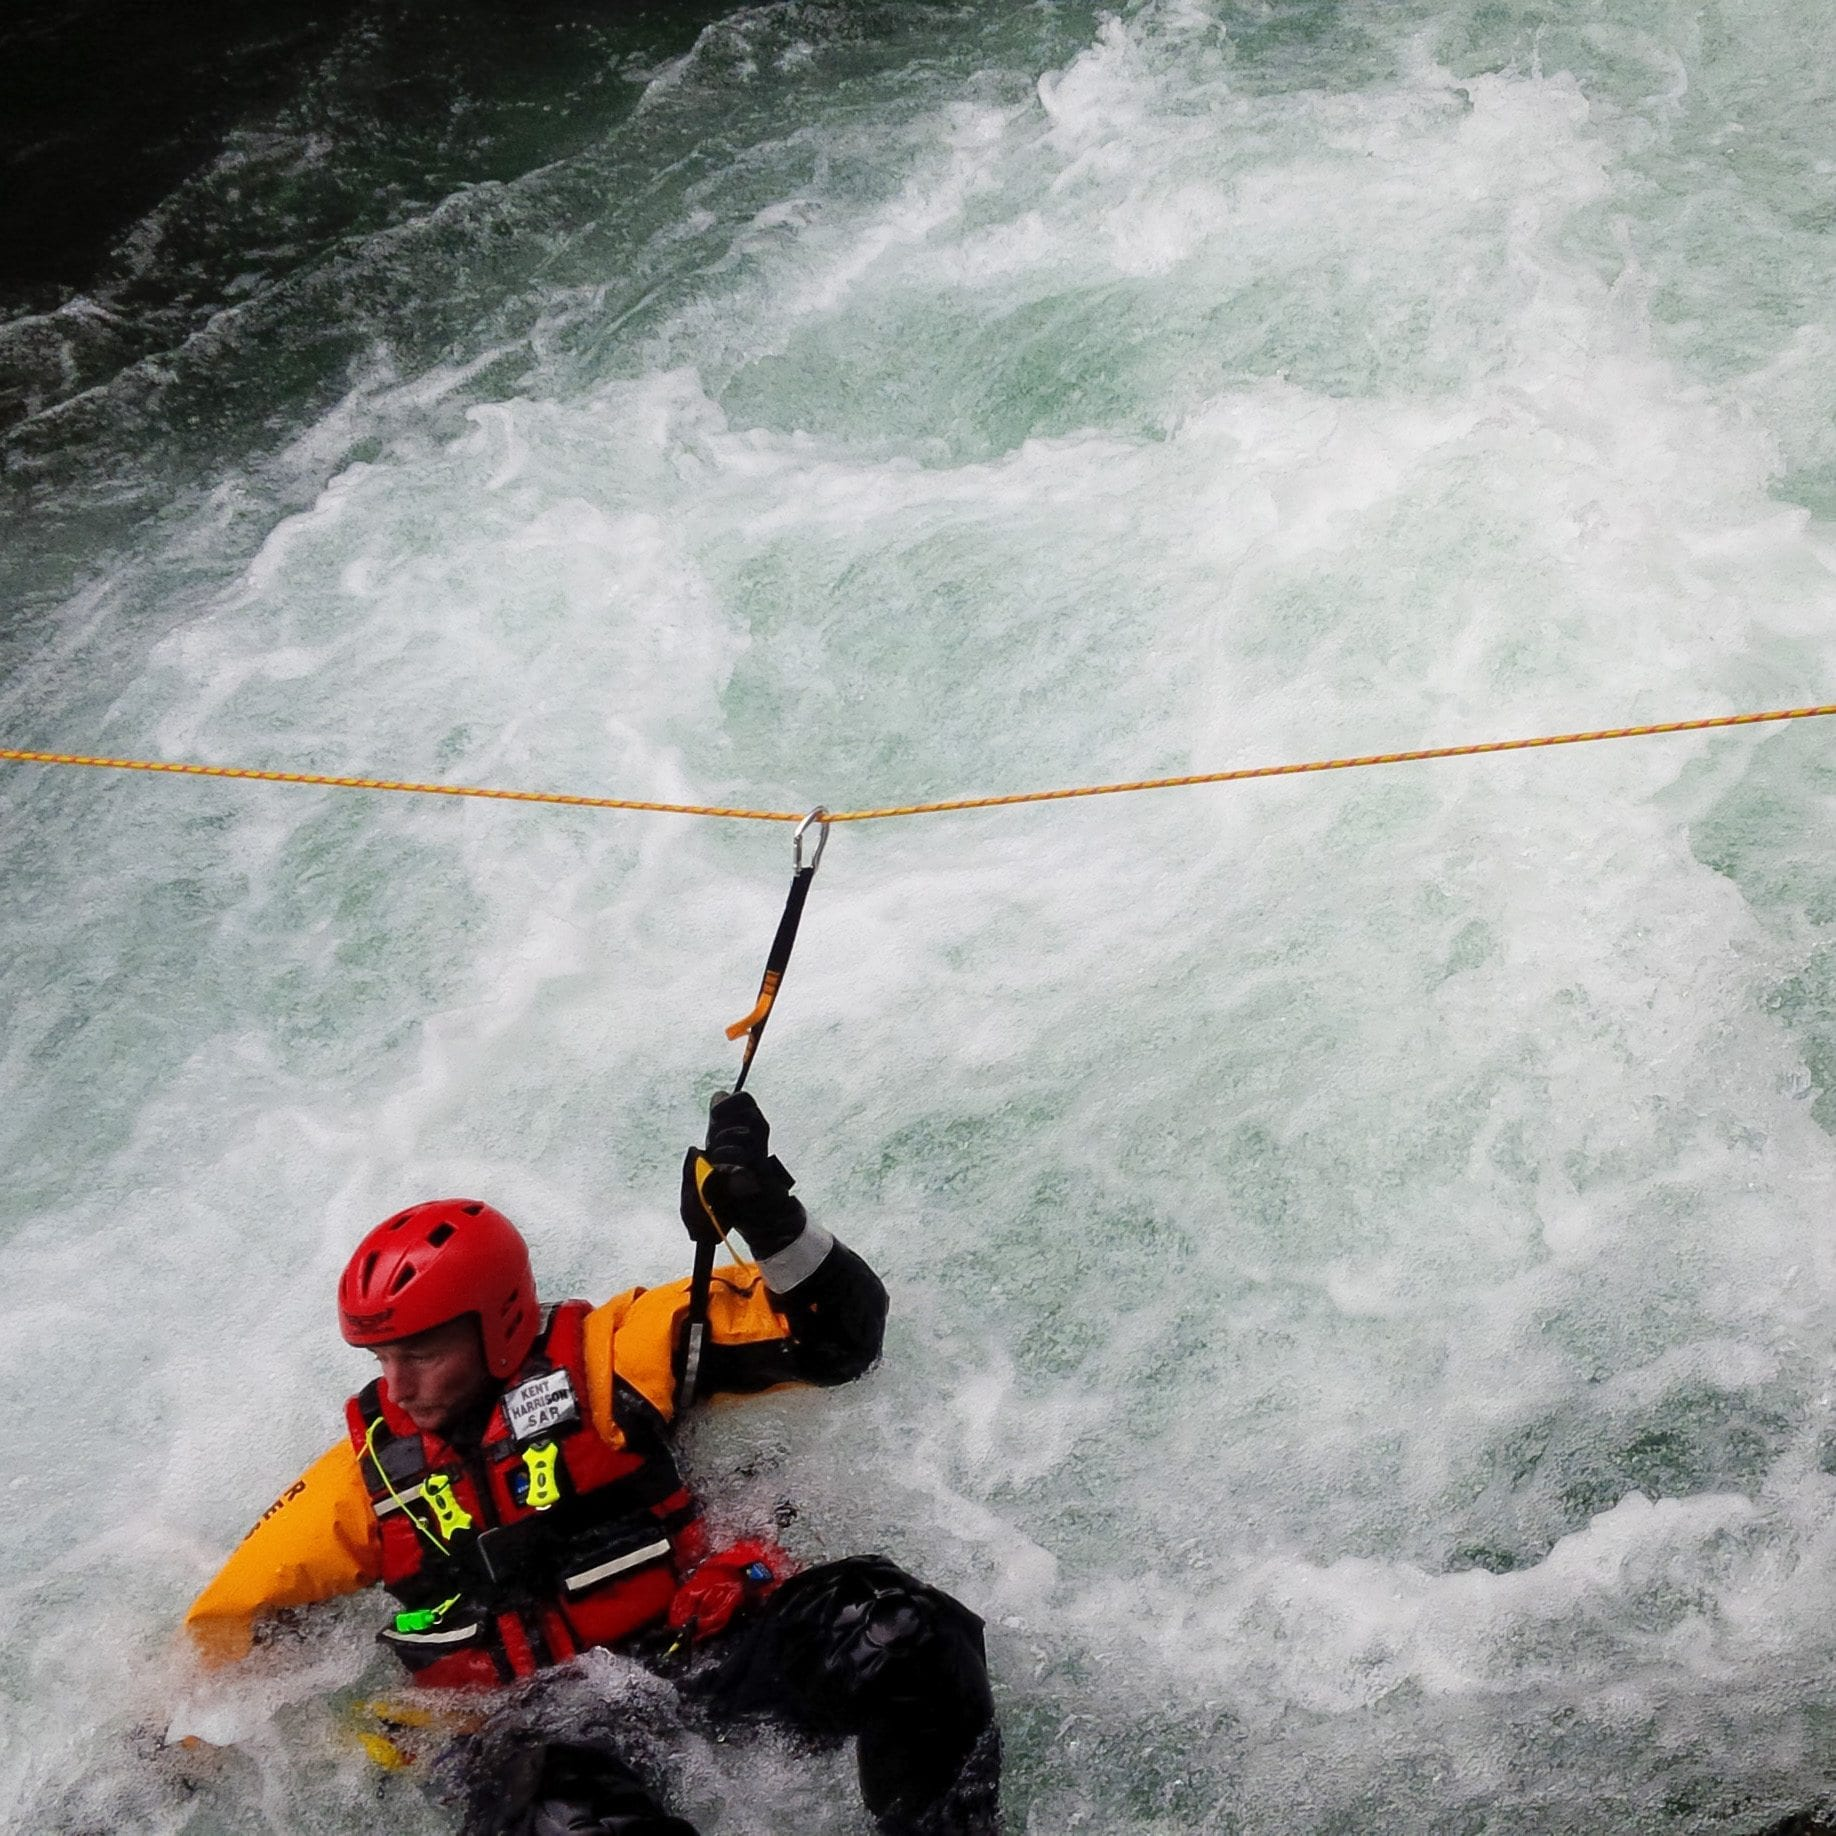 Swiftwater Rescue Training | Search and Rescue Training Course | First Responder Training